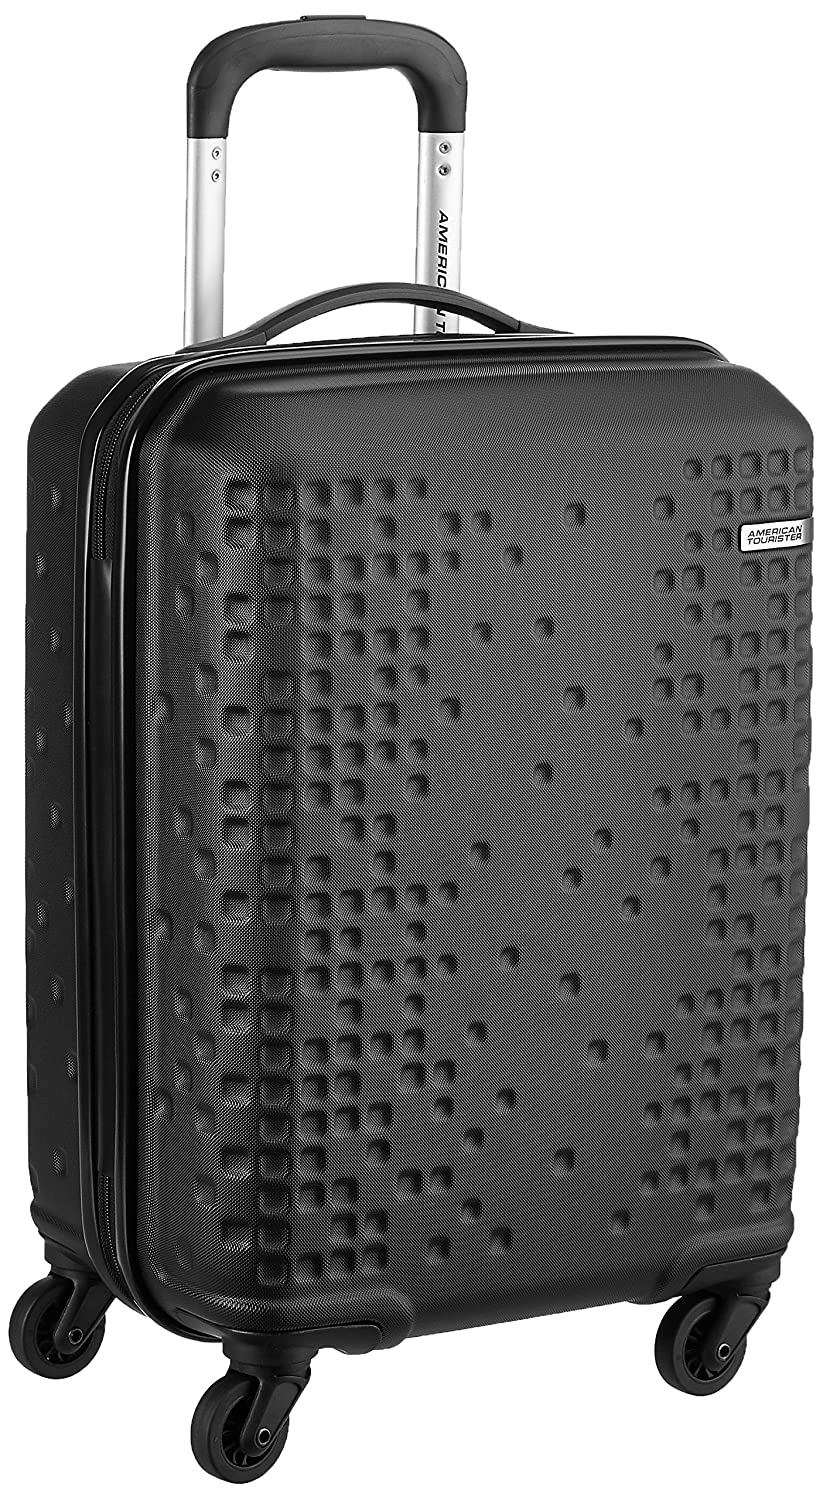 American Tourister Cruze ABS 55 Cms Black Hardsided Carry-On